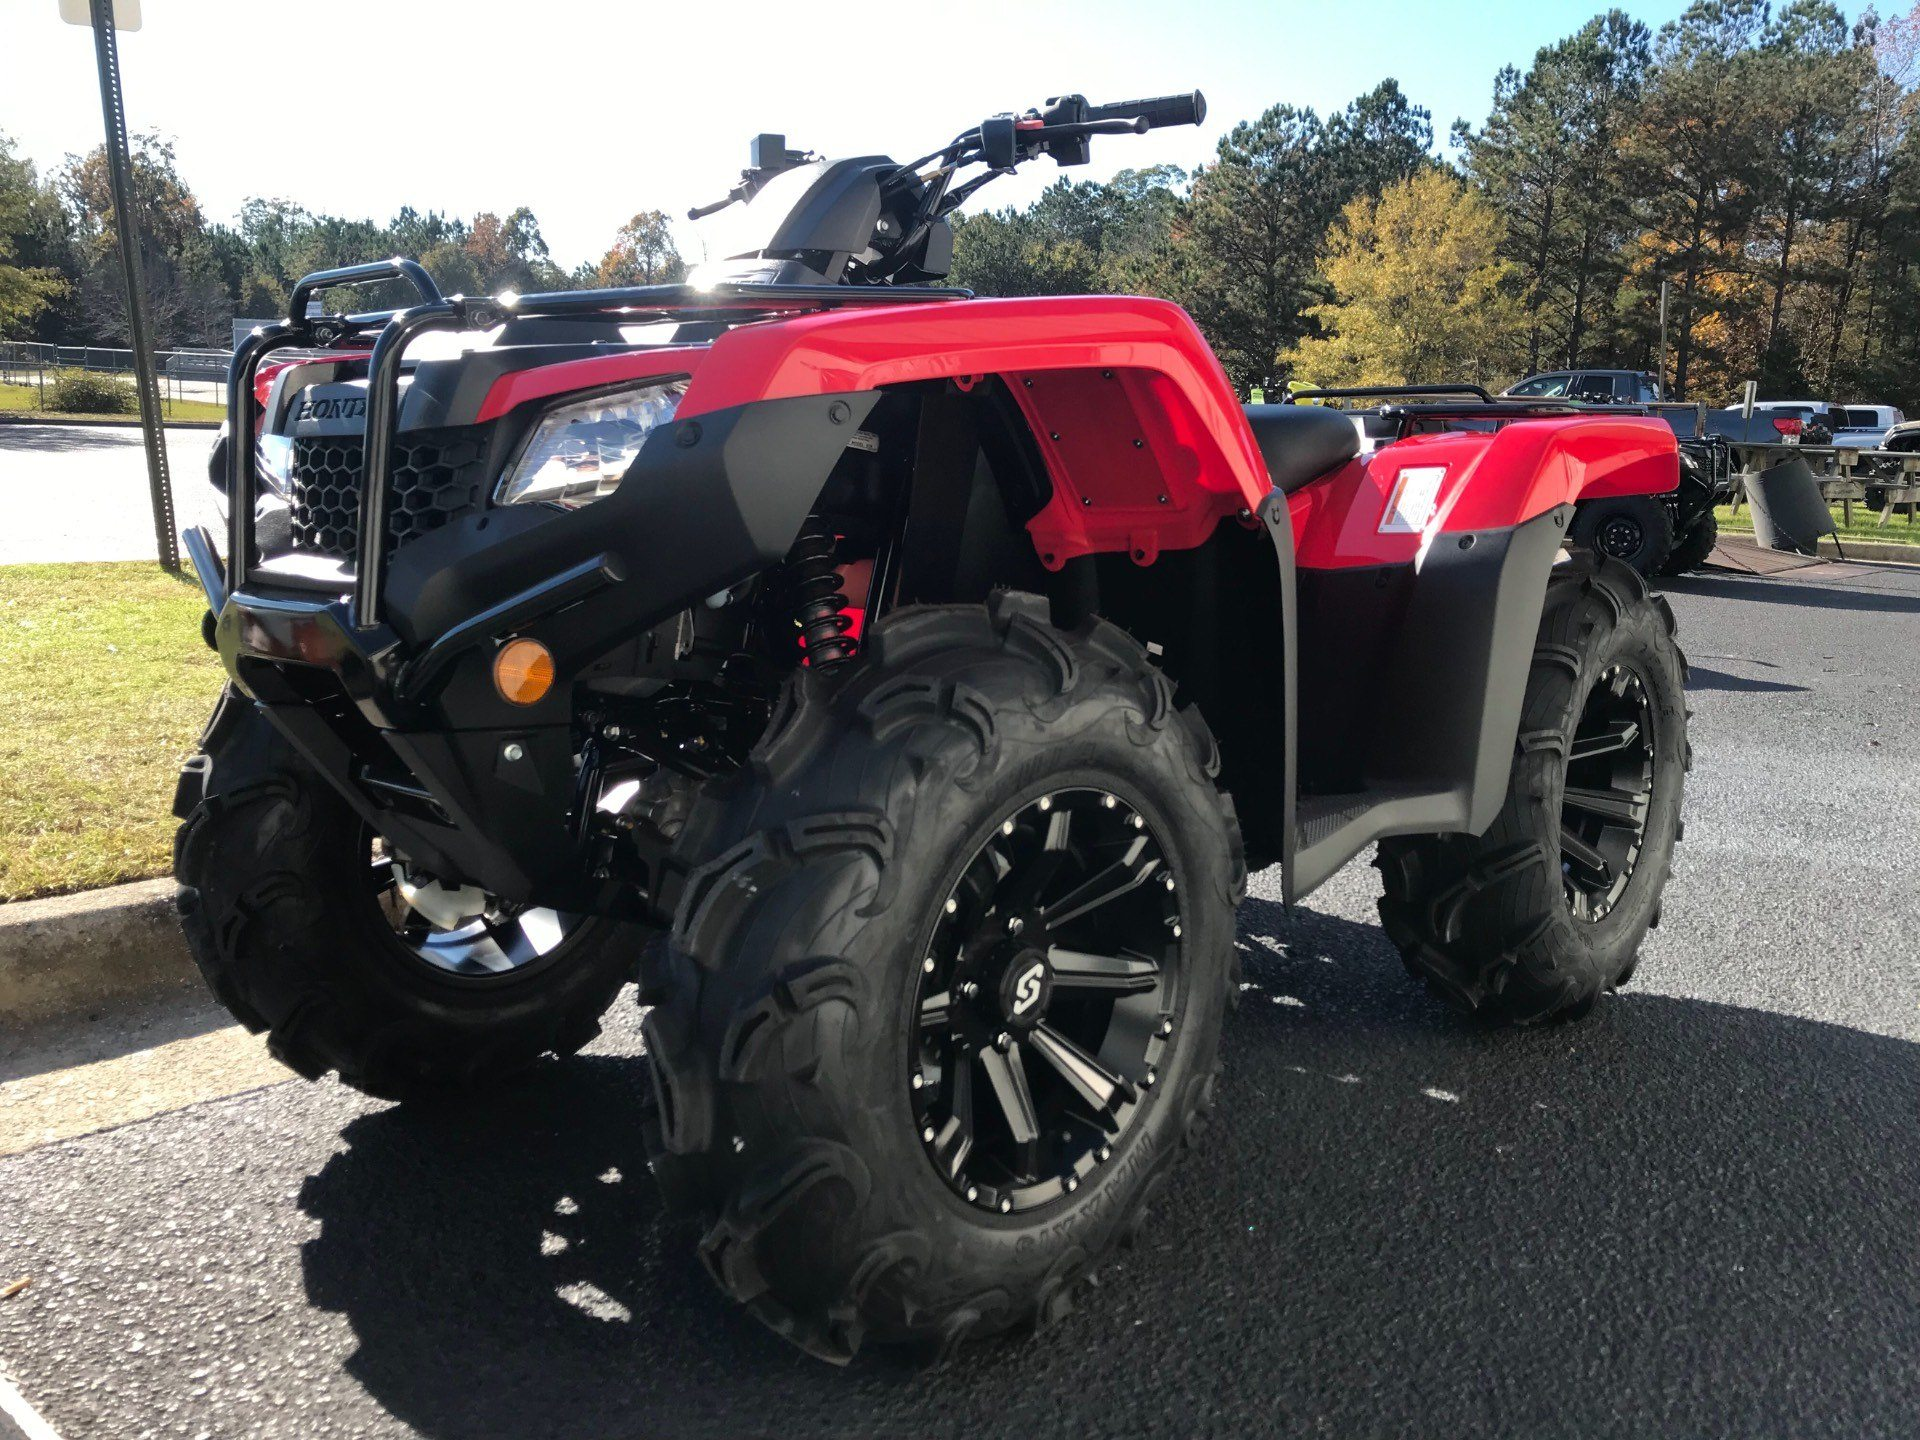 2019 Honda FourTrax Rancher 4x4 in Greenville, North Carolina - Photo 5